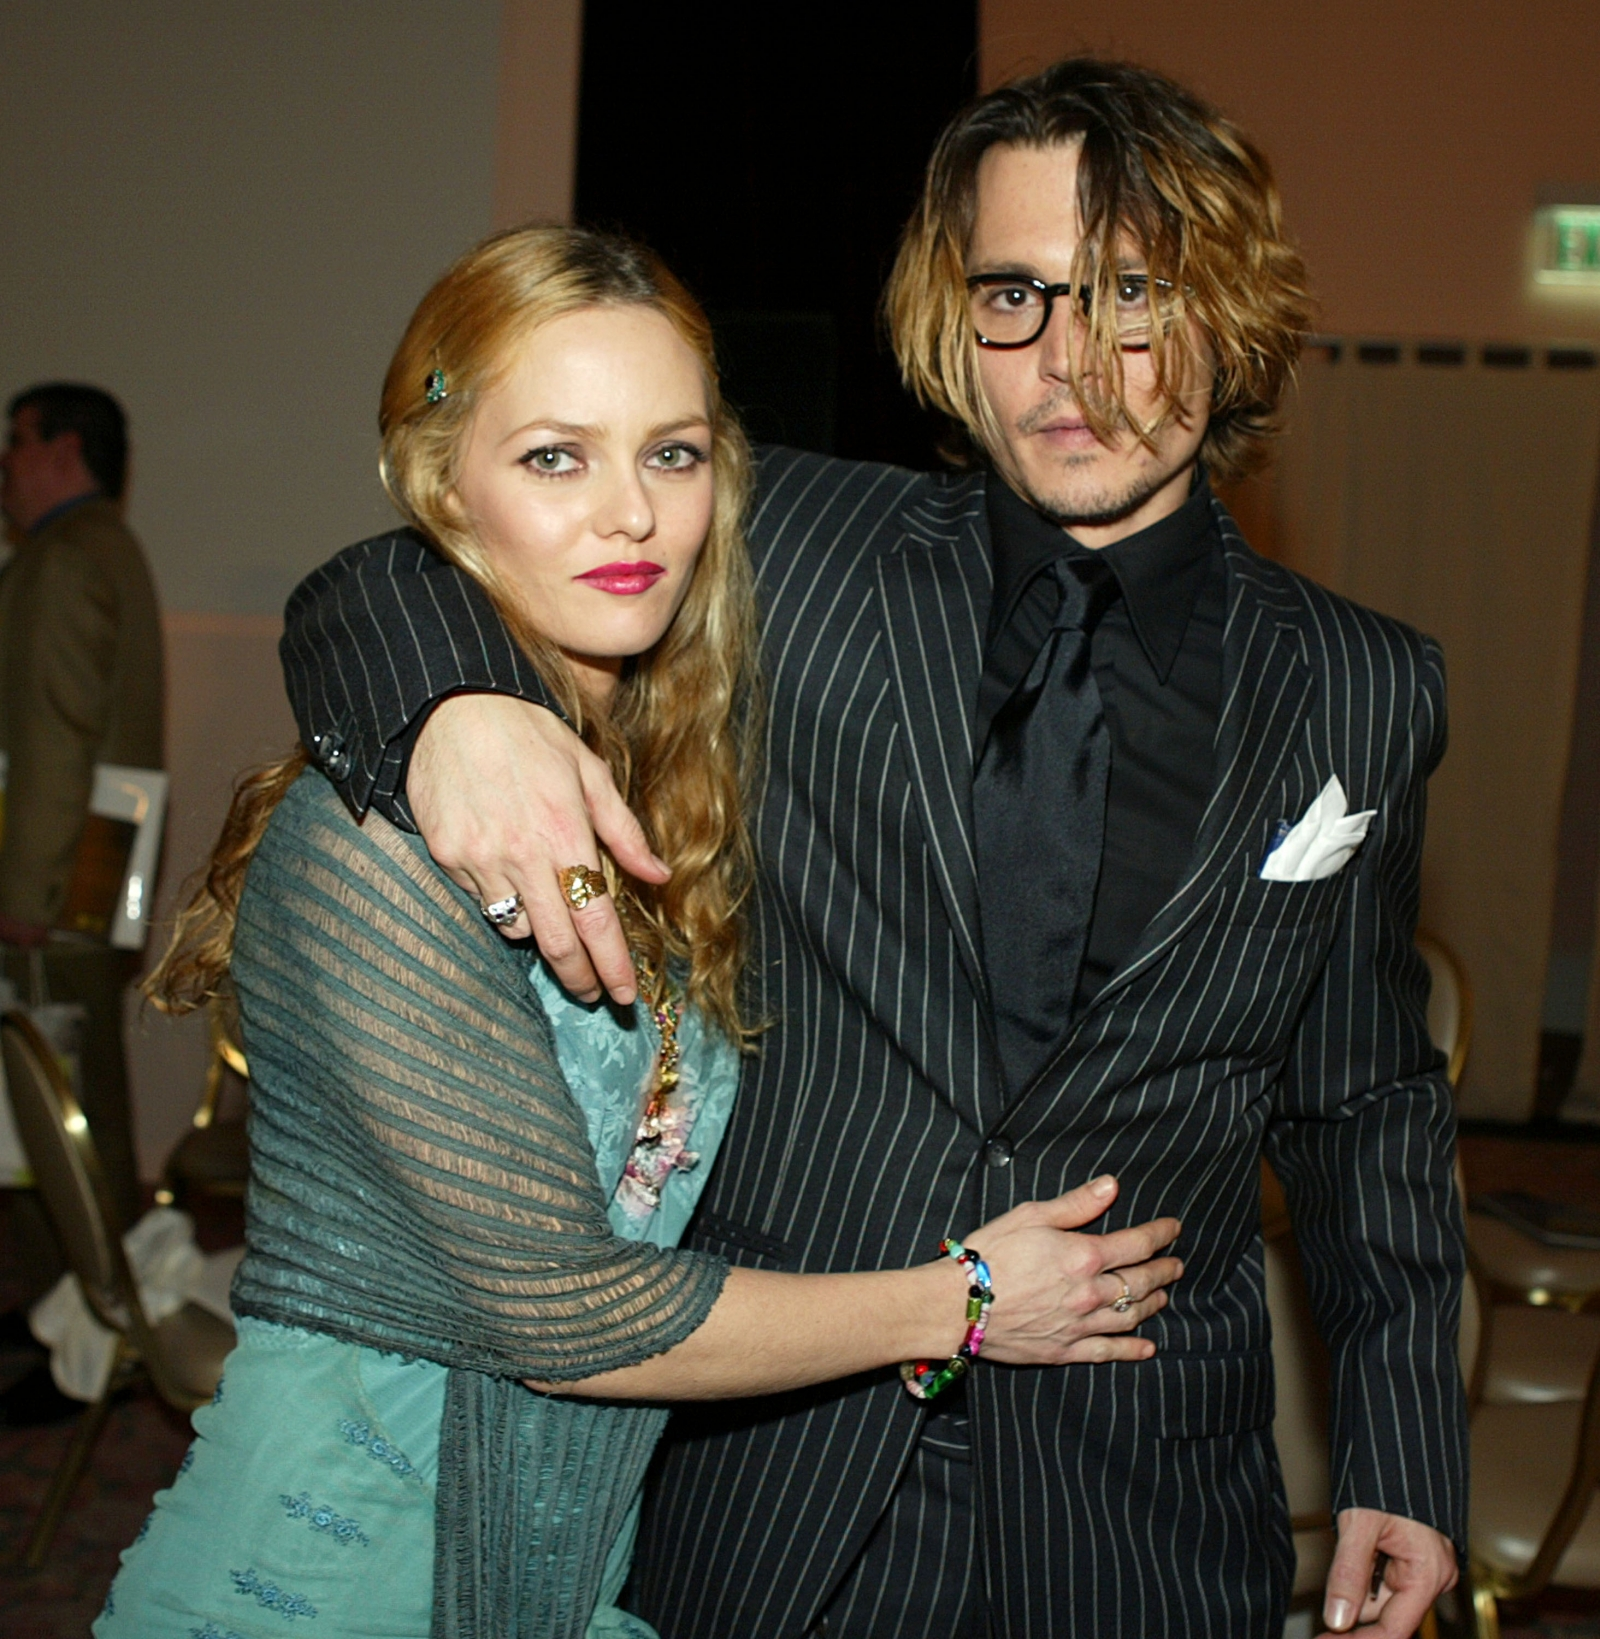 my relationship with johnny A timeline of johnny depp and amber heard's relationship and divorce a timeline of johnny depp and amber heard's relationship and divorce  johnny continued screaming at me, pulling my hair .